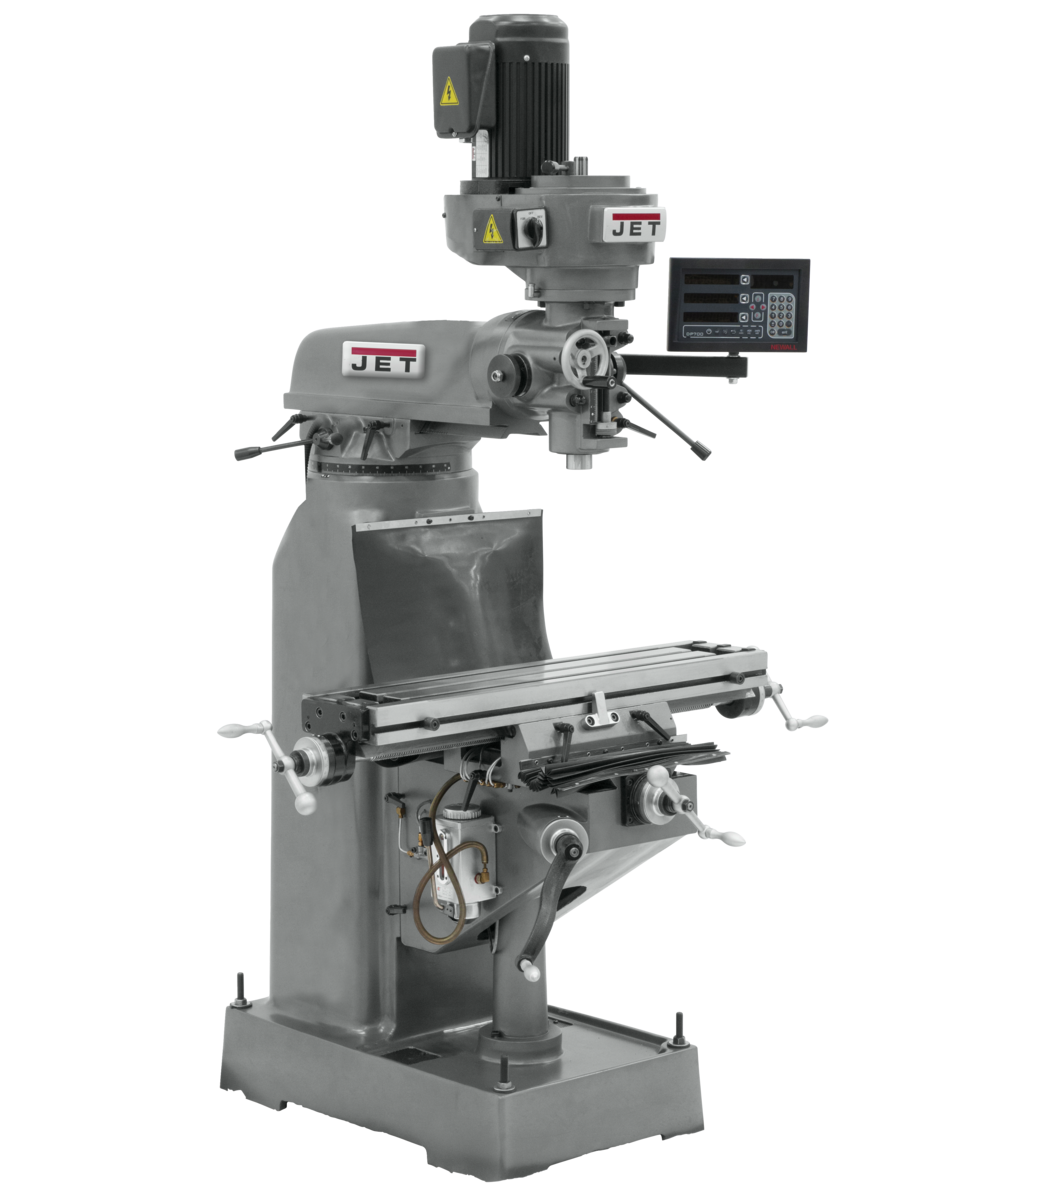 JVM-836-1 Mill With 3-Axis Newall DP700 DRO (Quill) and X-Axis Powerfeed